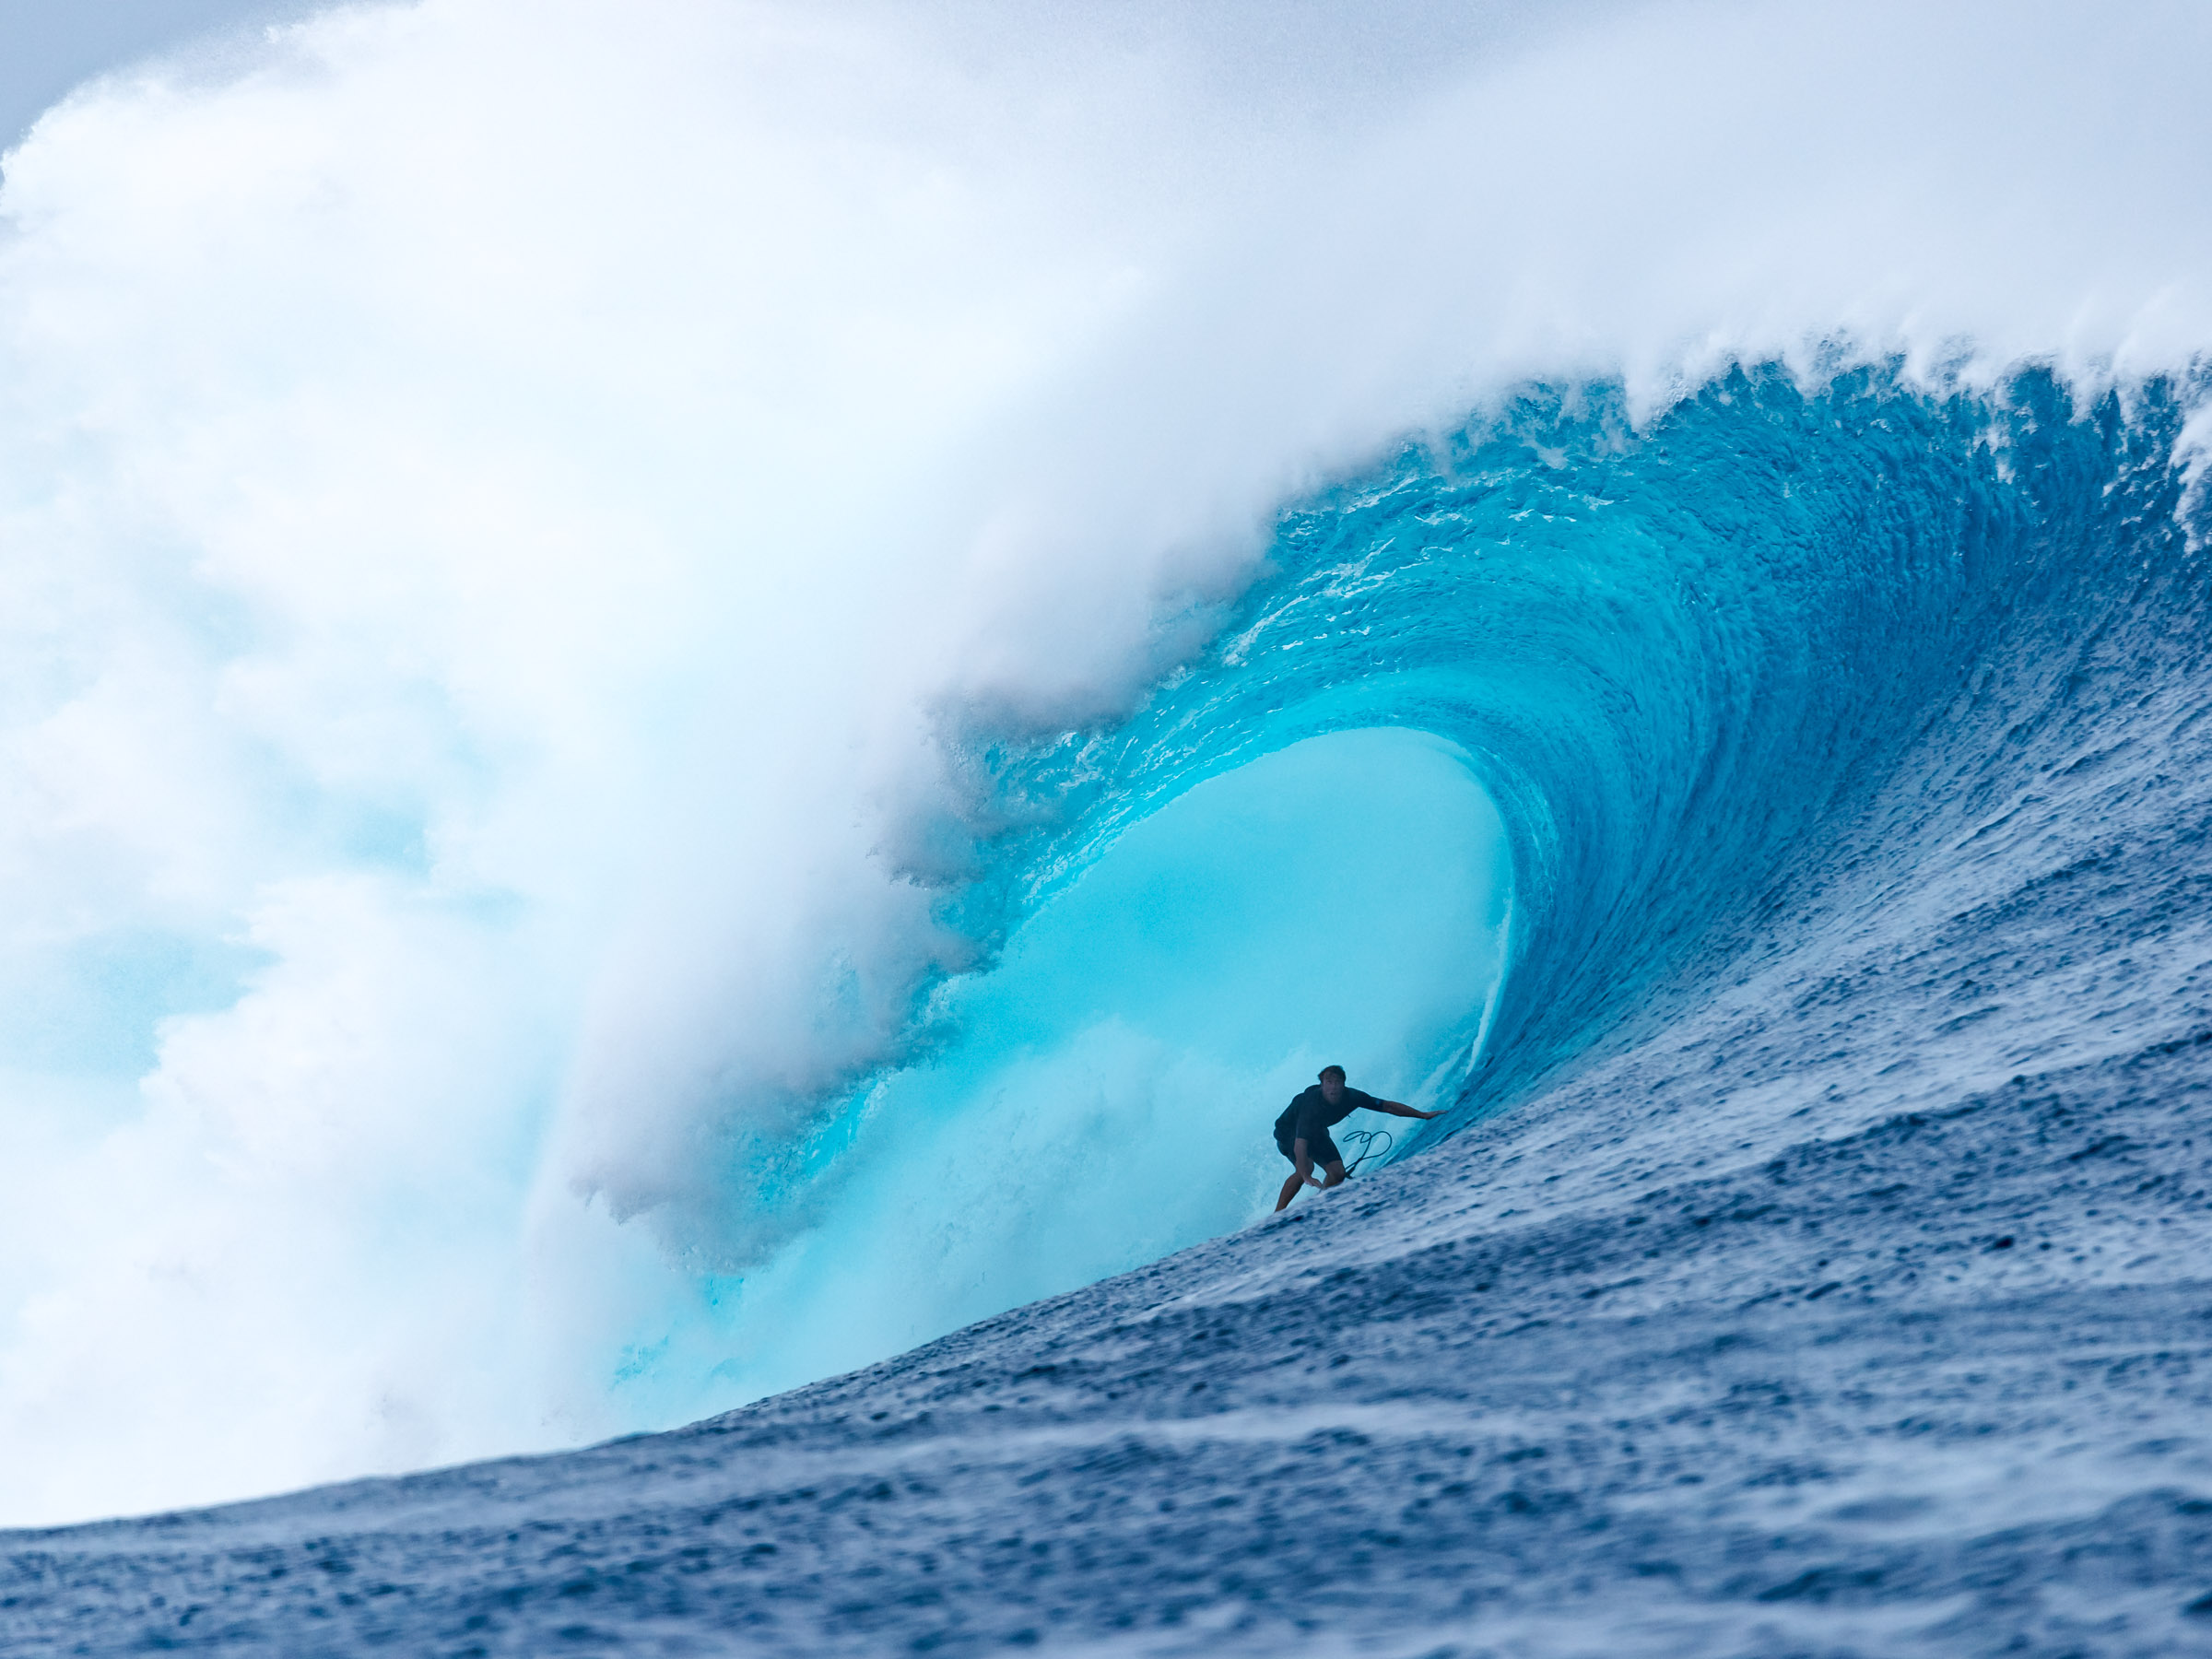 Sequence - How to take amazing surfing photos every time-15.jpg